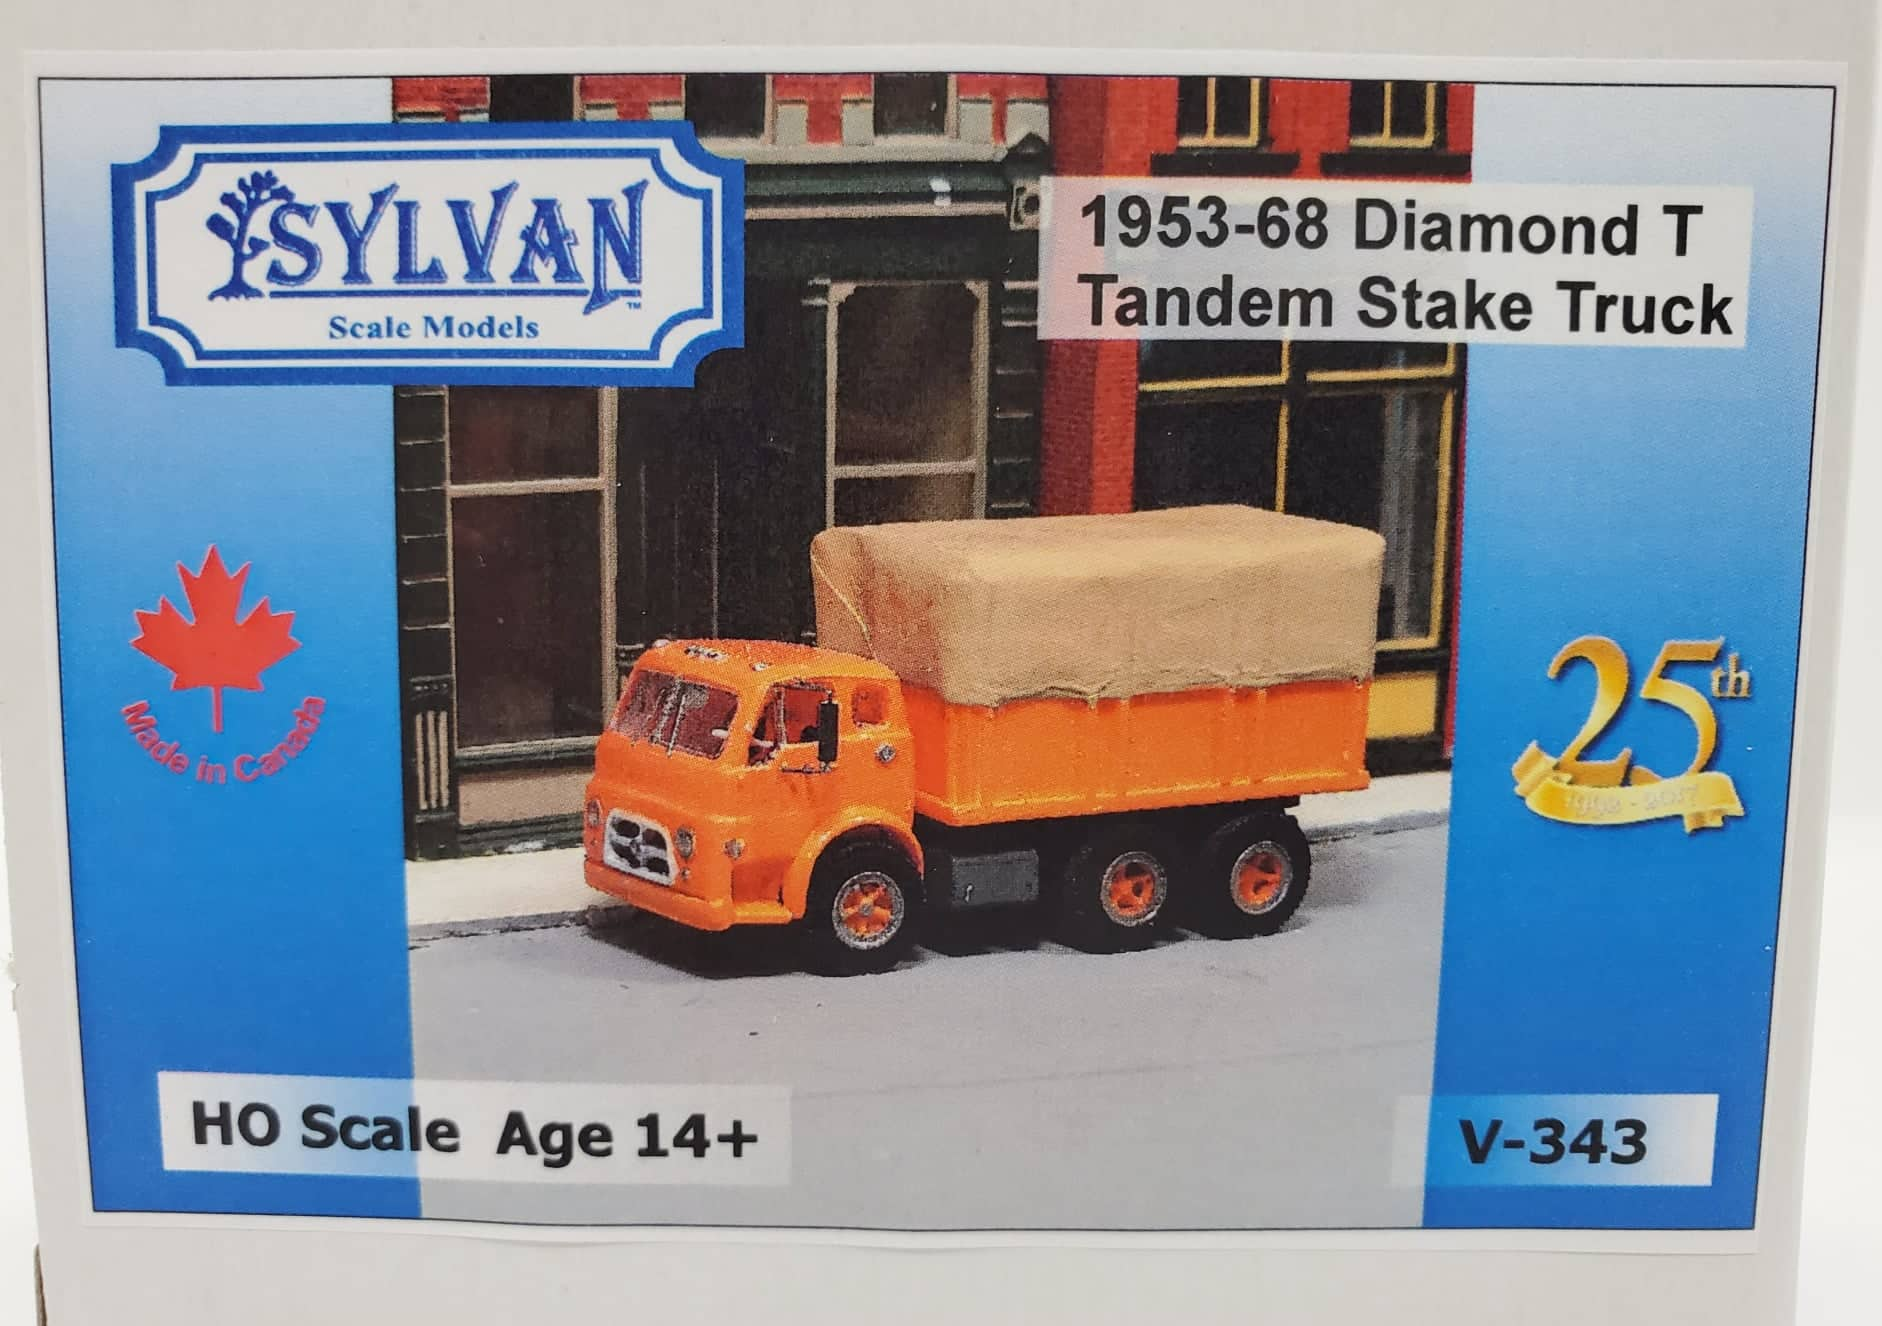 Sylvan Scale Models 343 HO Scale - 1953/68 Diamond T Tandem Stake Truck - Unpainted and Resin Cast Kit